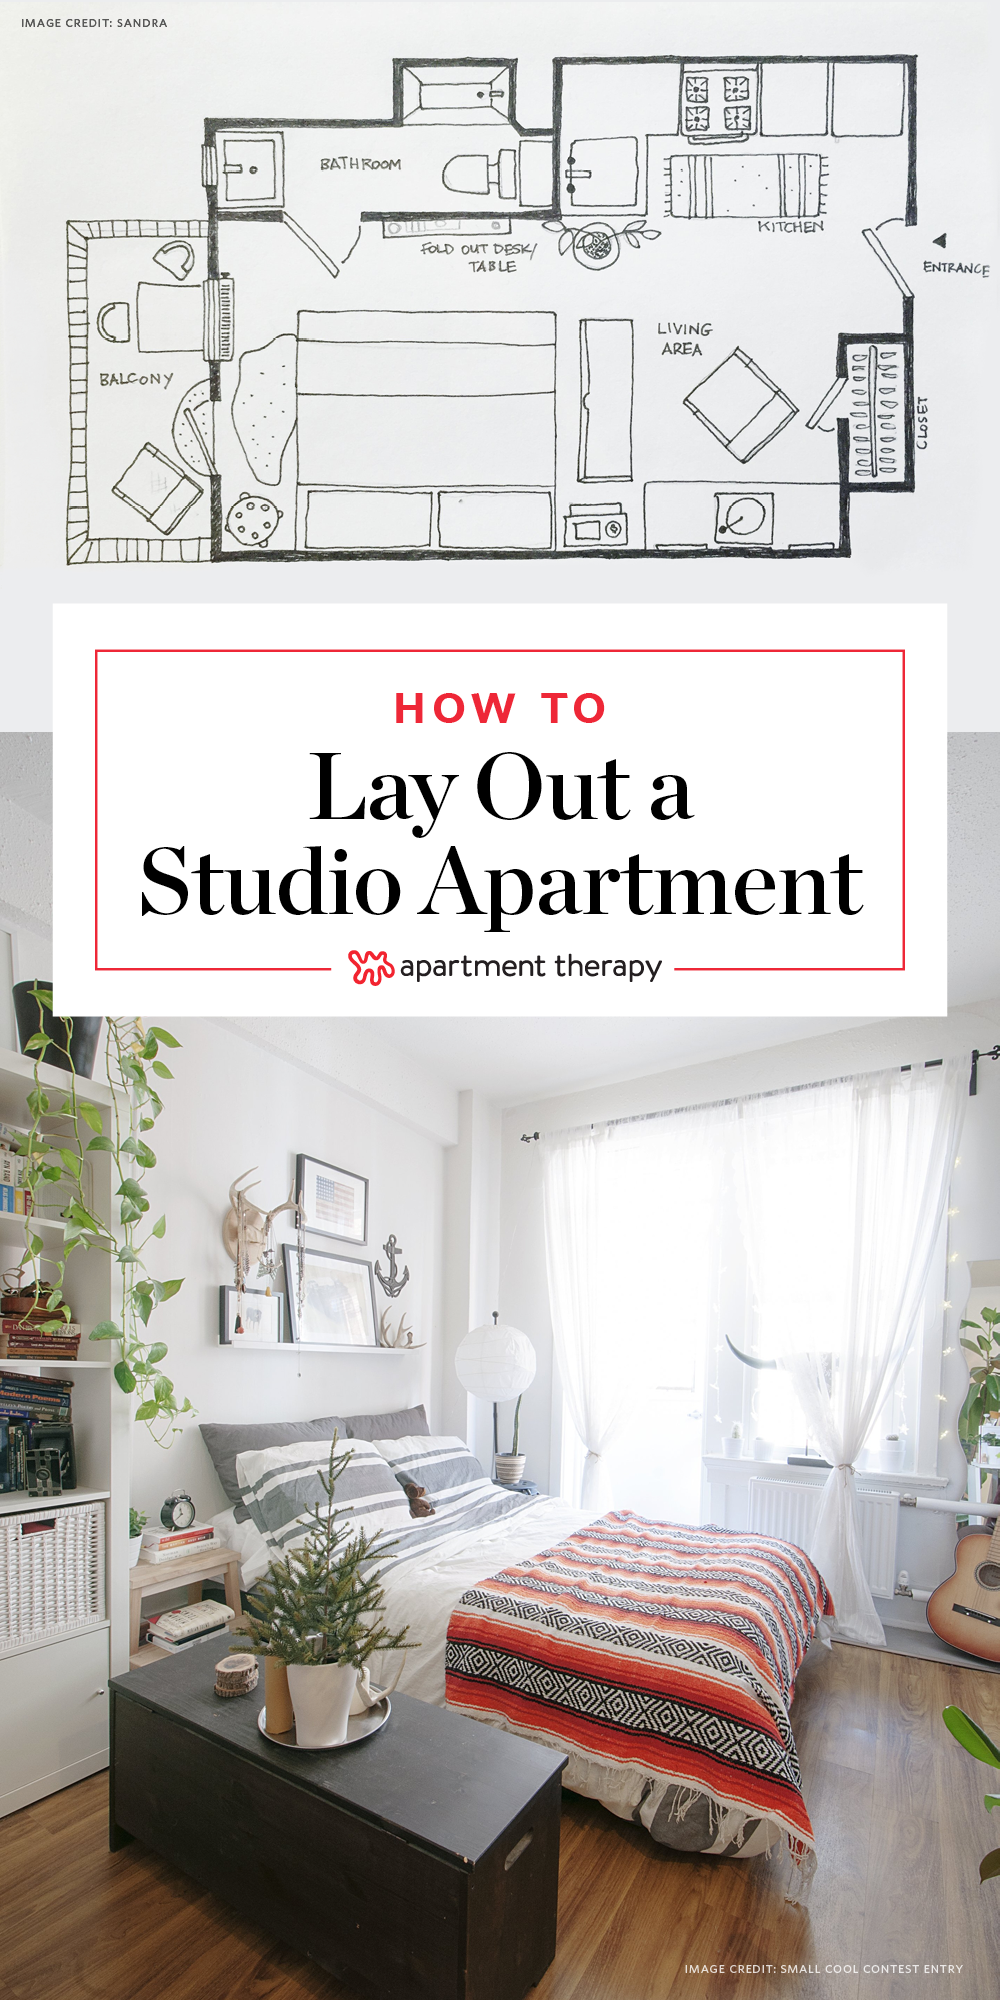 19 Ways to Lay Out a Studio Apartment  Apartment Therapy